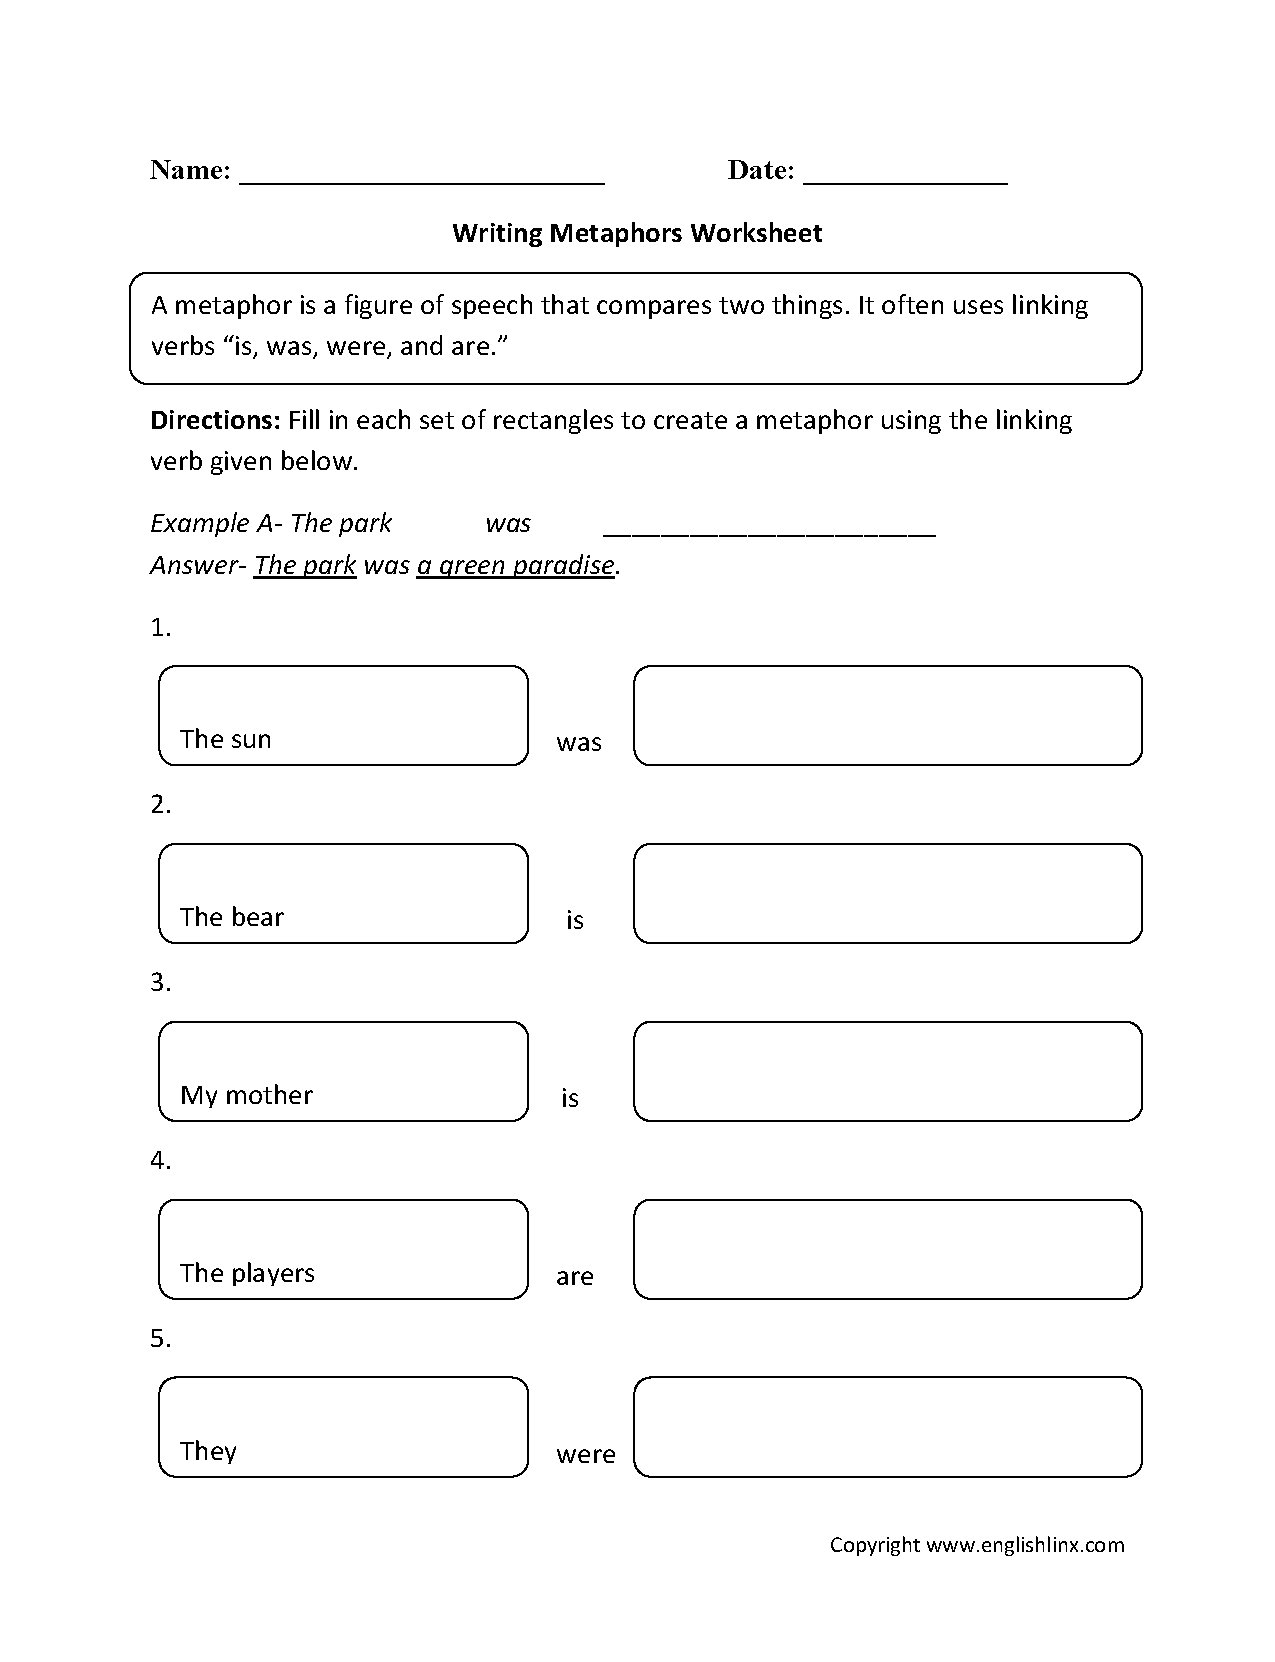 Worksheets Figures Of Speech Worksheet writing metaphors worksheet part 1 beginner english language arts beginner